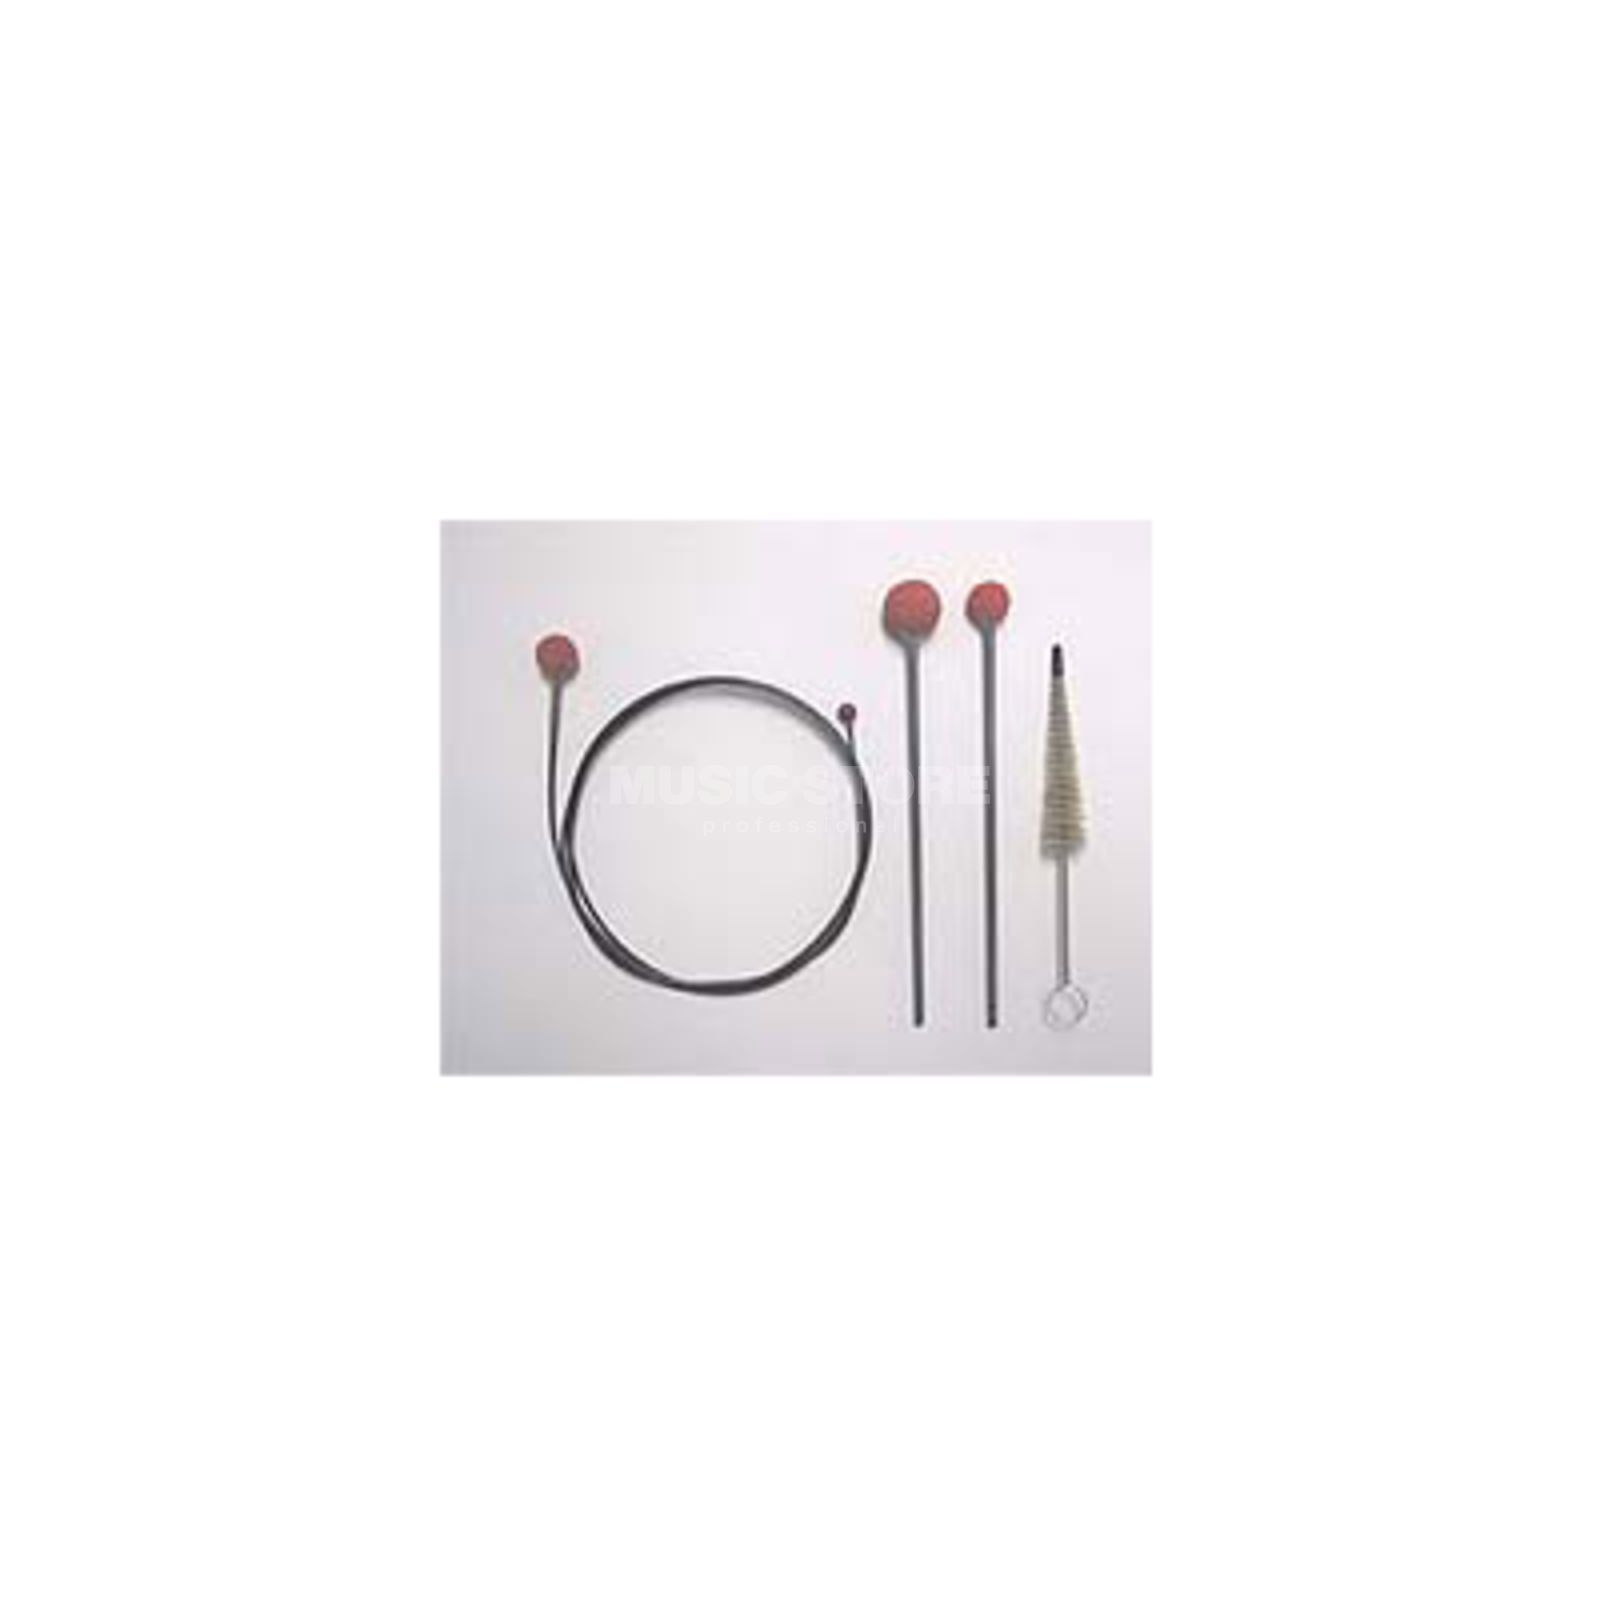 REKA Cleaning Set for Tuba/Sausophone/Helicon Изображение товара